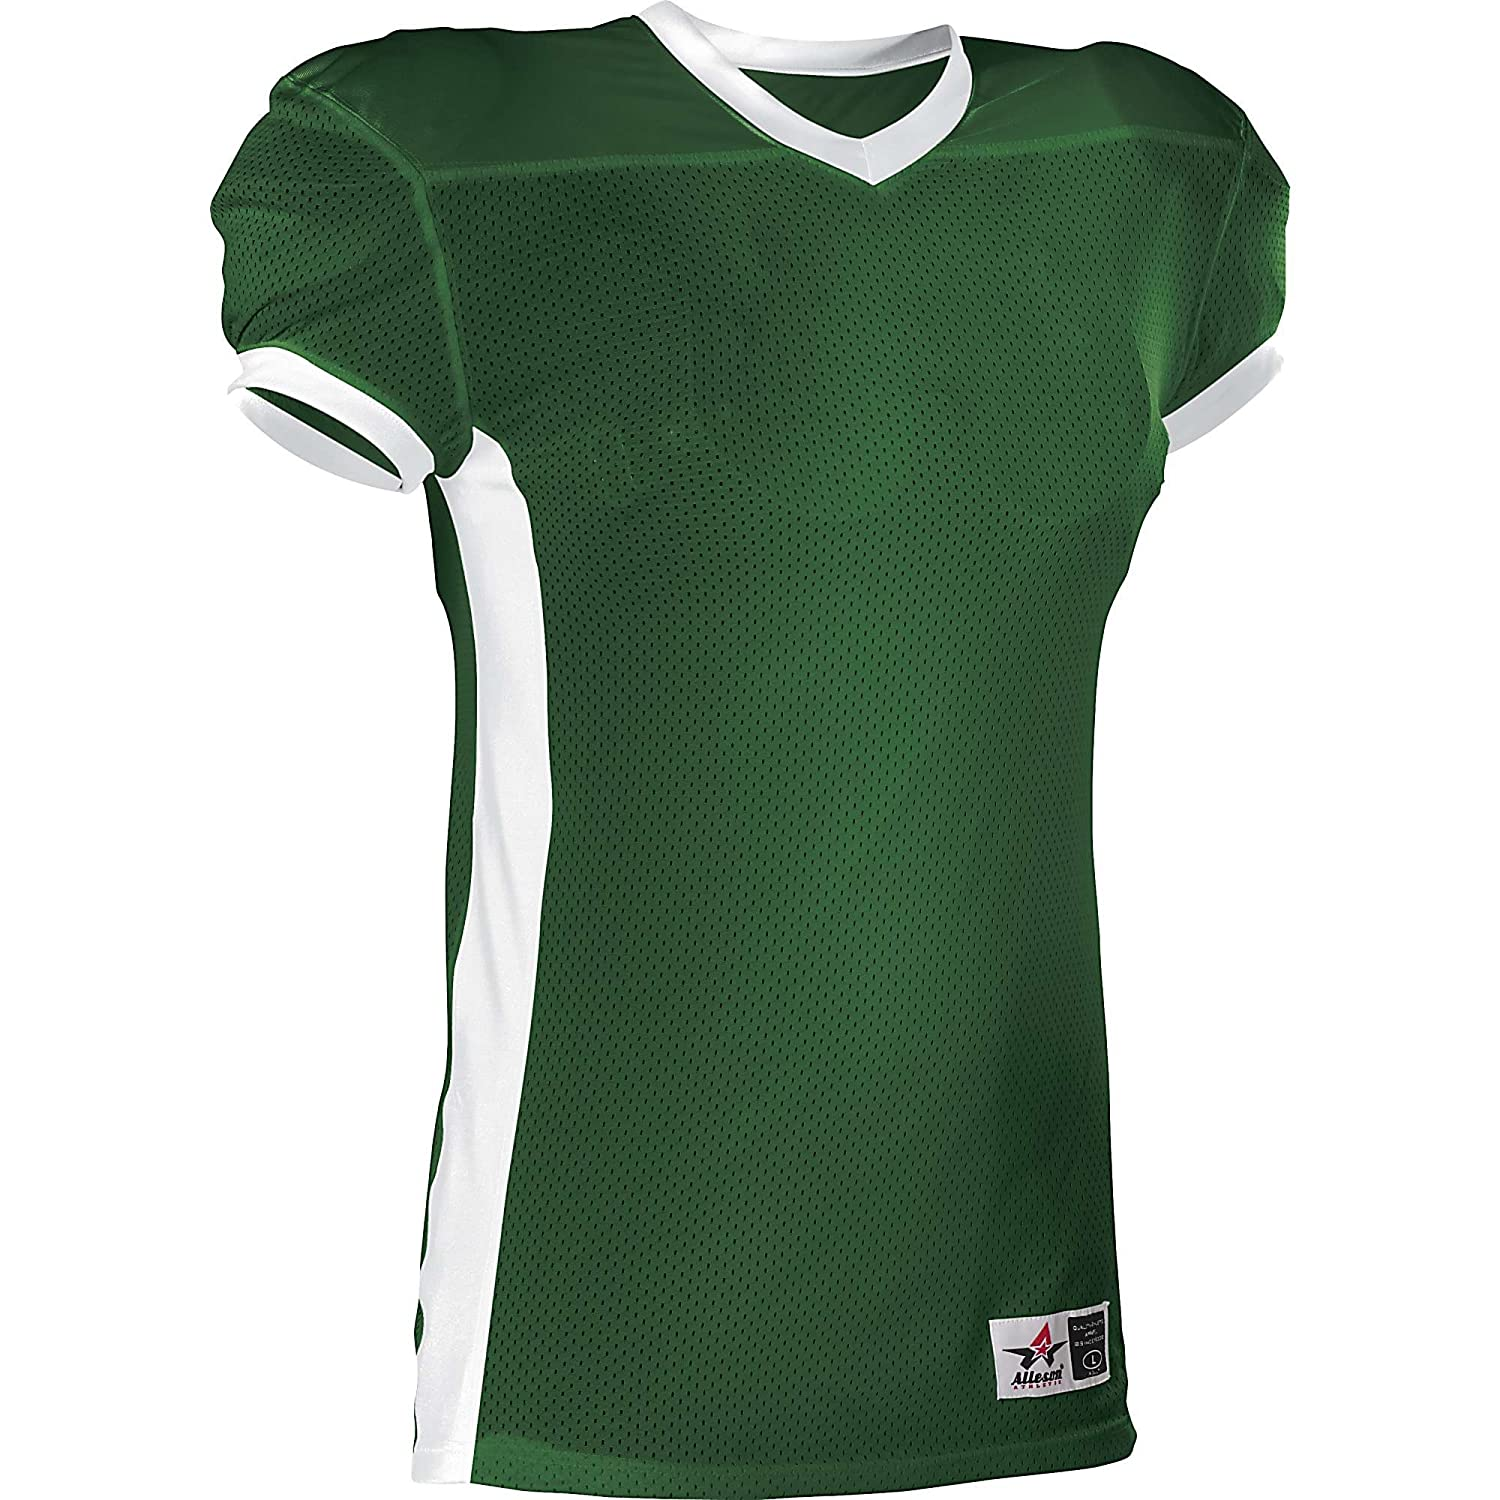 Alleson Youth Football Jersey B007ZRWNLA Small|ダークグリーン ダークグリーン Small